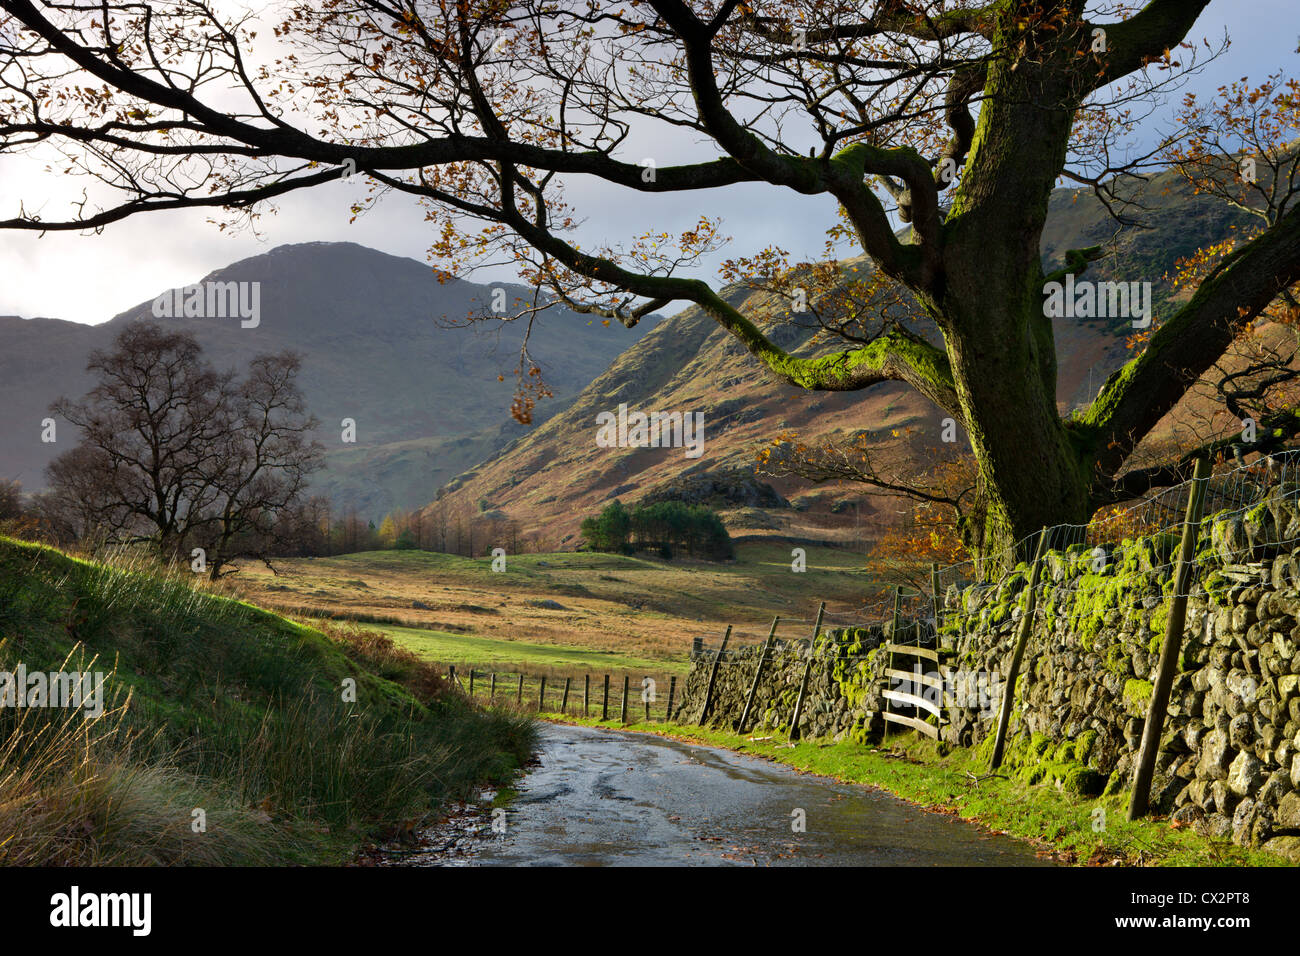 Country lane leading towards Blea Tarn in the Langdale Valley, Lake District National Park, Cumbria, England. - Stock Image